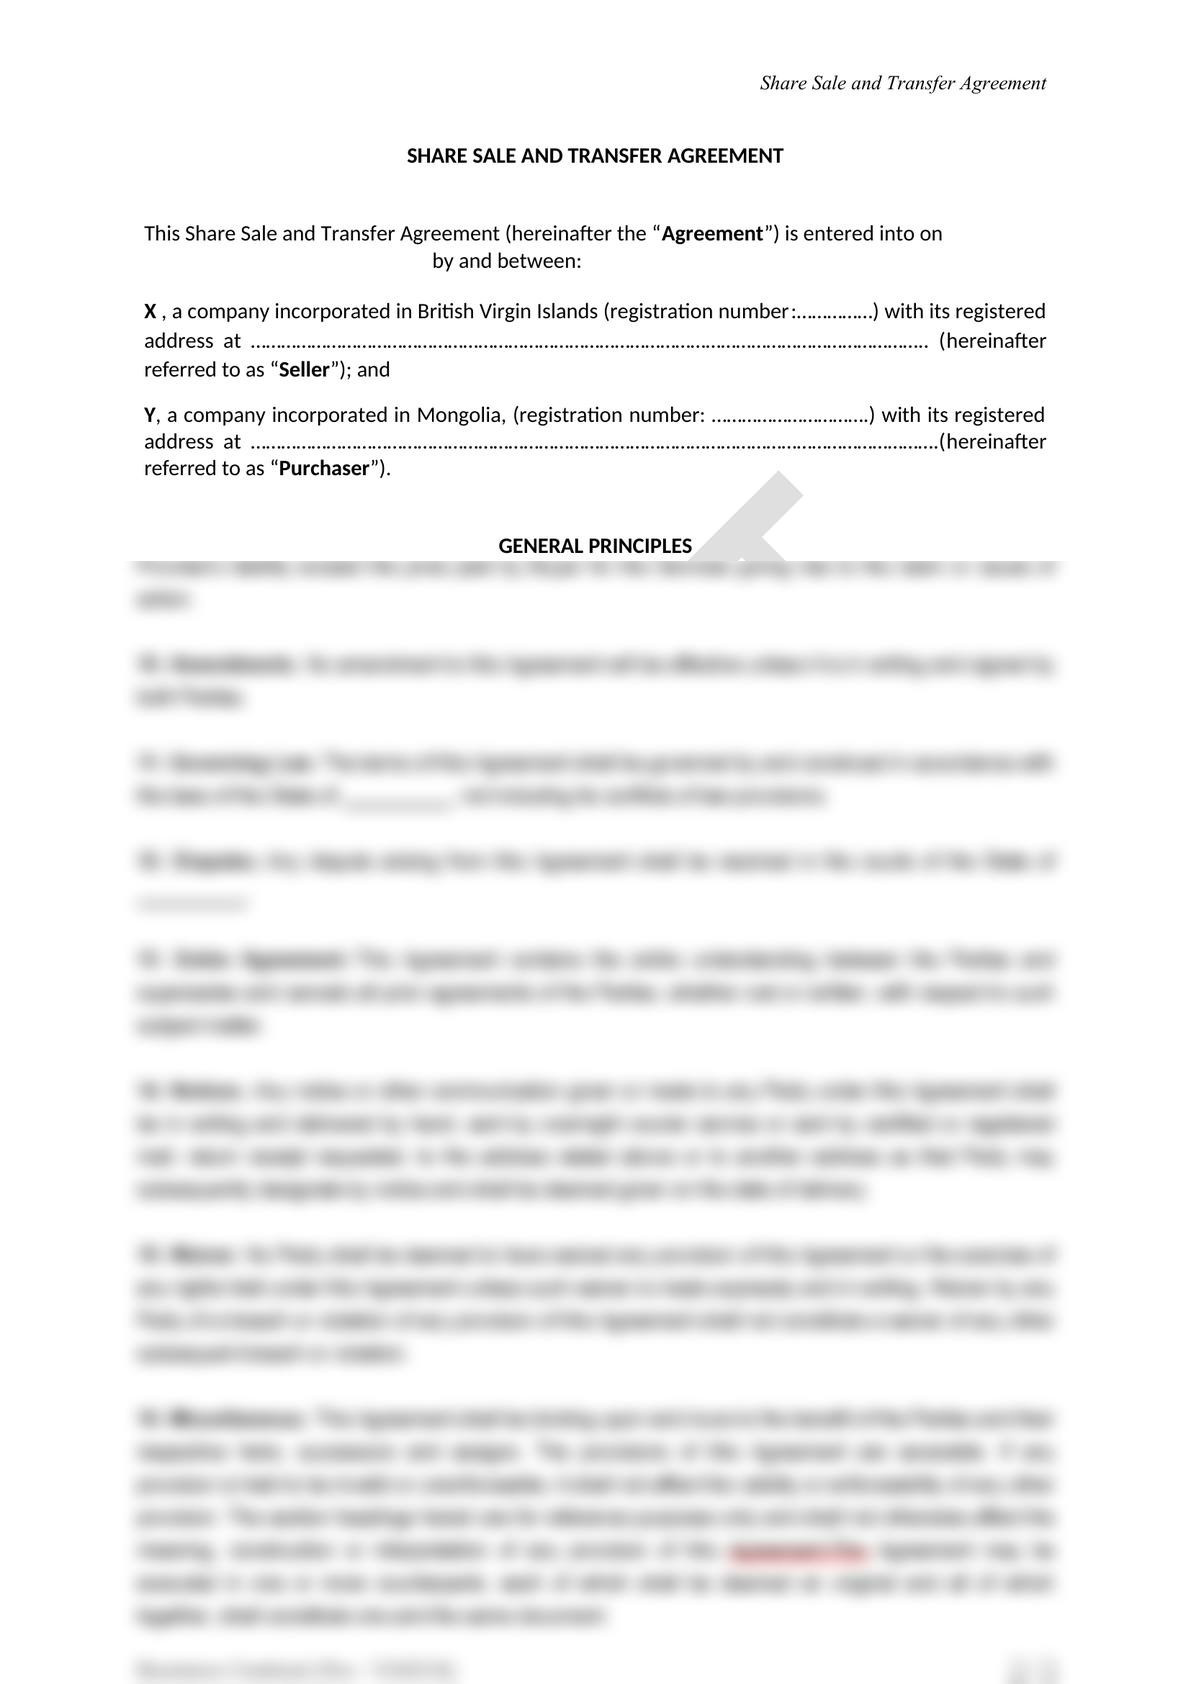 Share Sale and Purchase Agreement in Mongolia-2